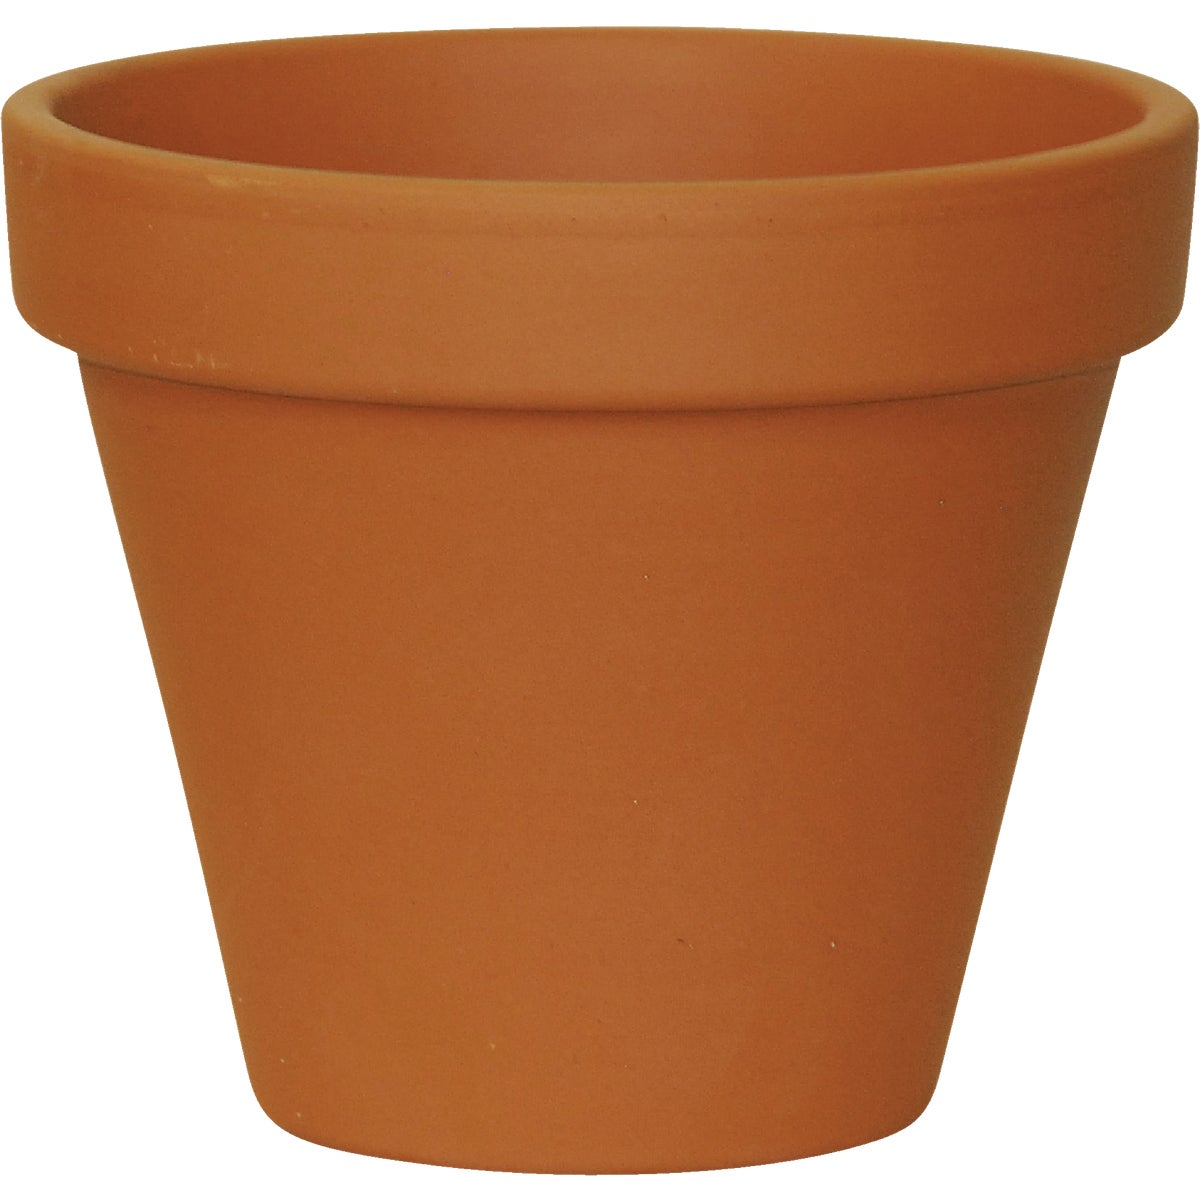 "4"" TERRA COTTA CLAY POT - 01110PZ by Deroma"